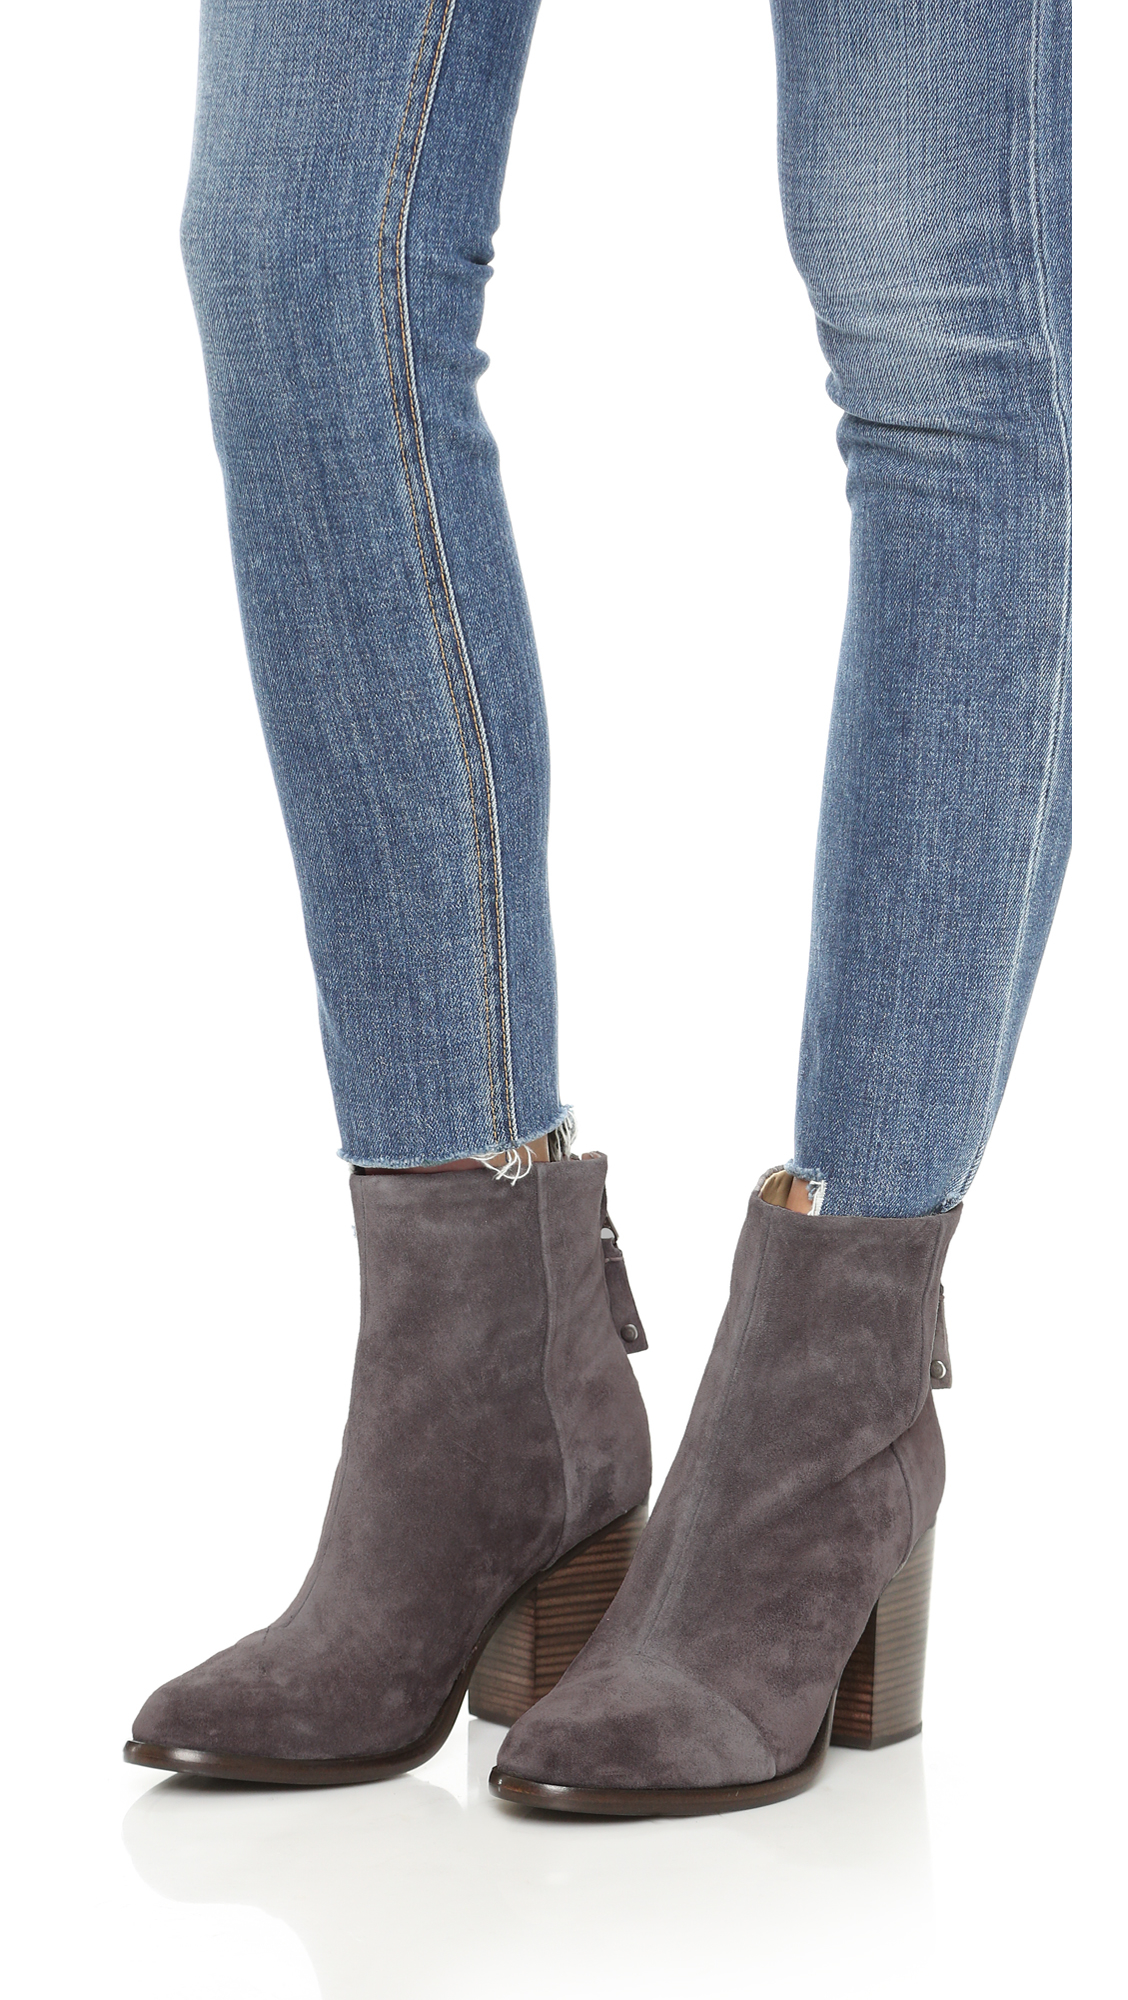 outlet get to buy Rag & Bone Suede Ashby Ankle Boots free shipping cheap real YlTAo9ifRB